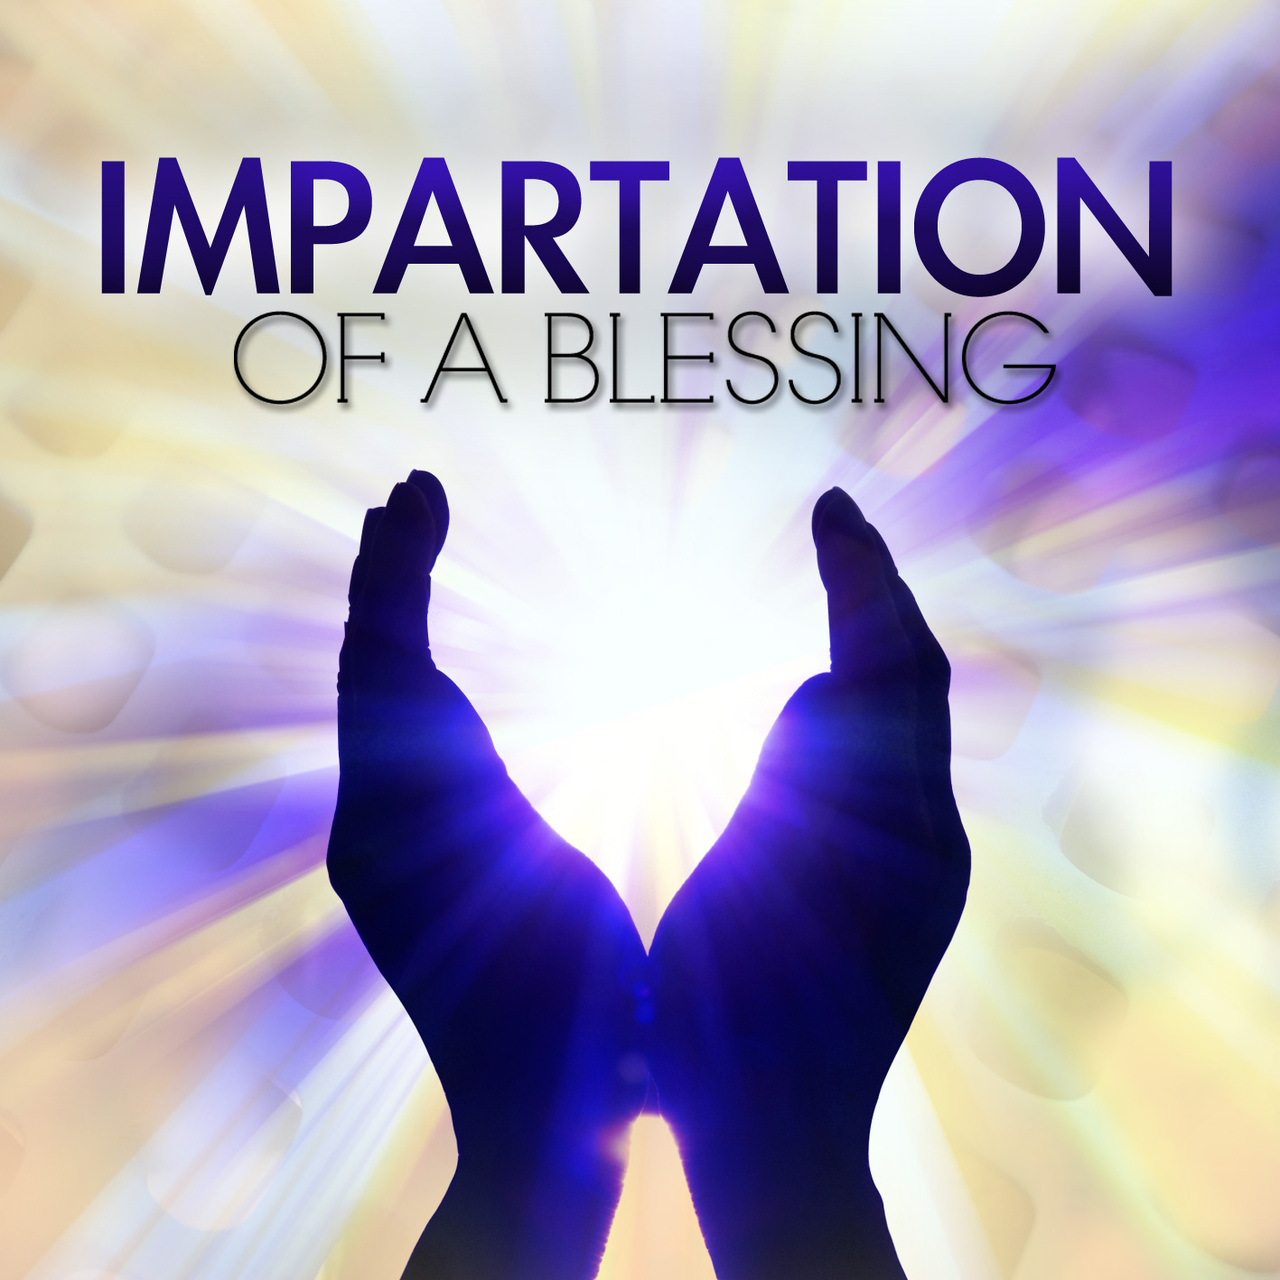 impartationofblessing_mp3__38160-1392741001-1280-1280